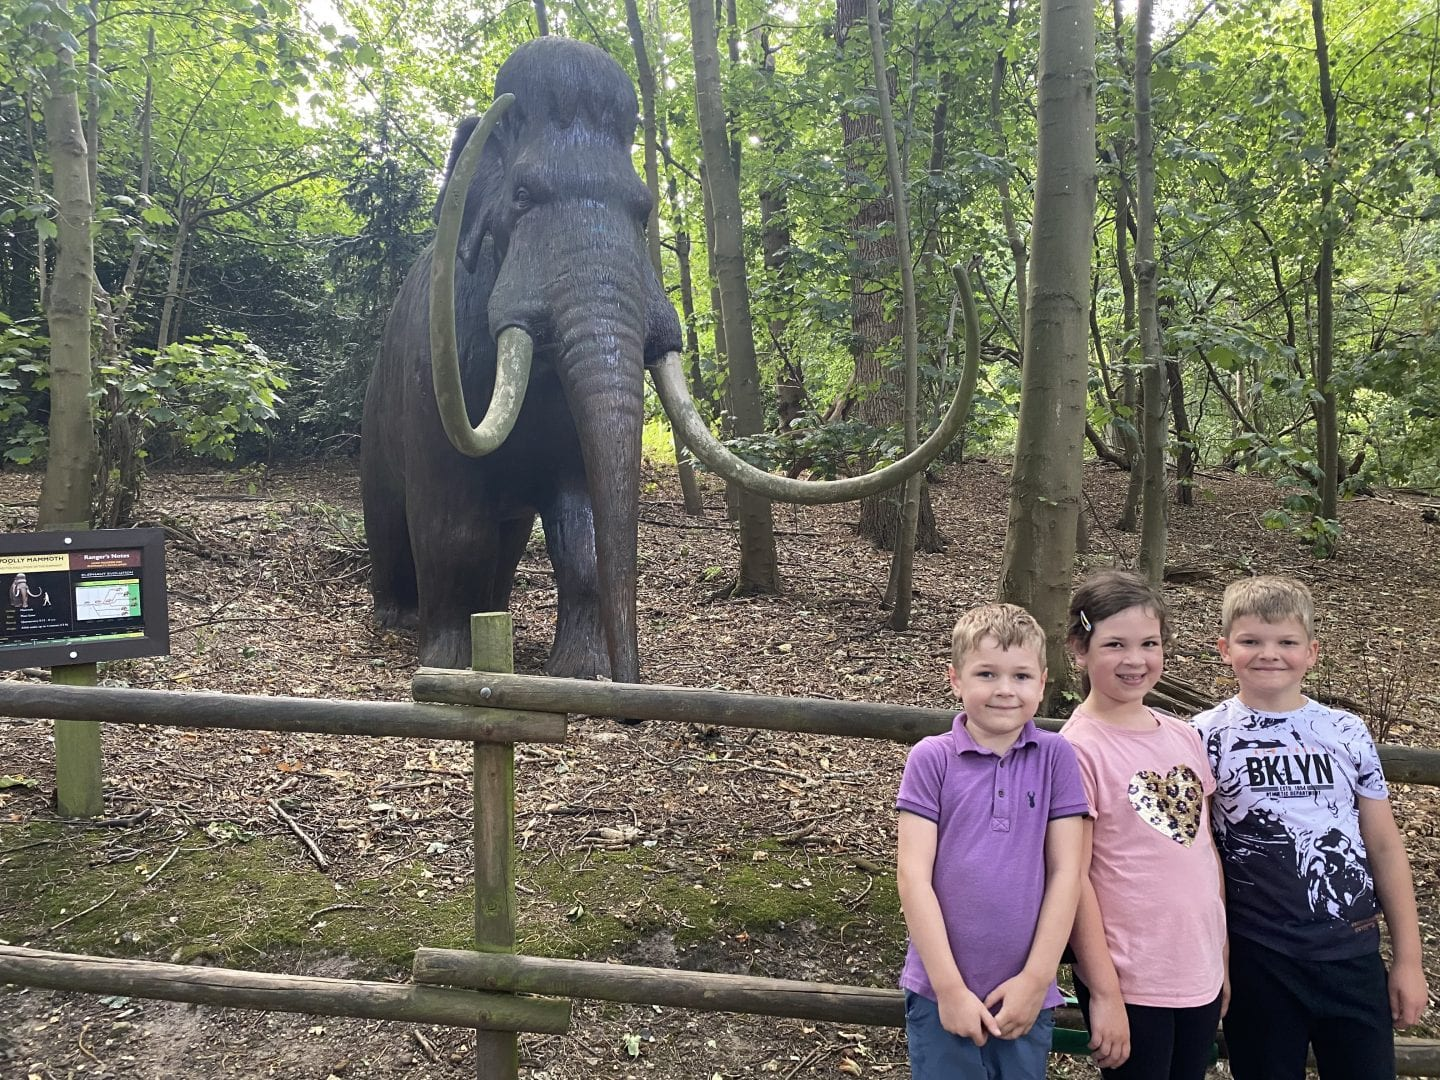 3 children standing in front of a staue of a wooly mammoth